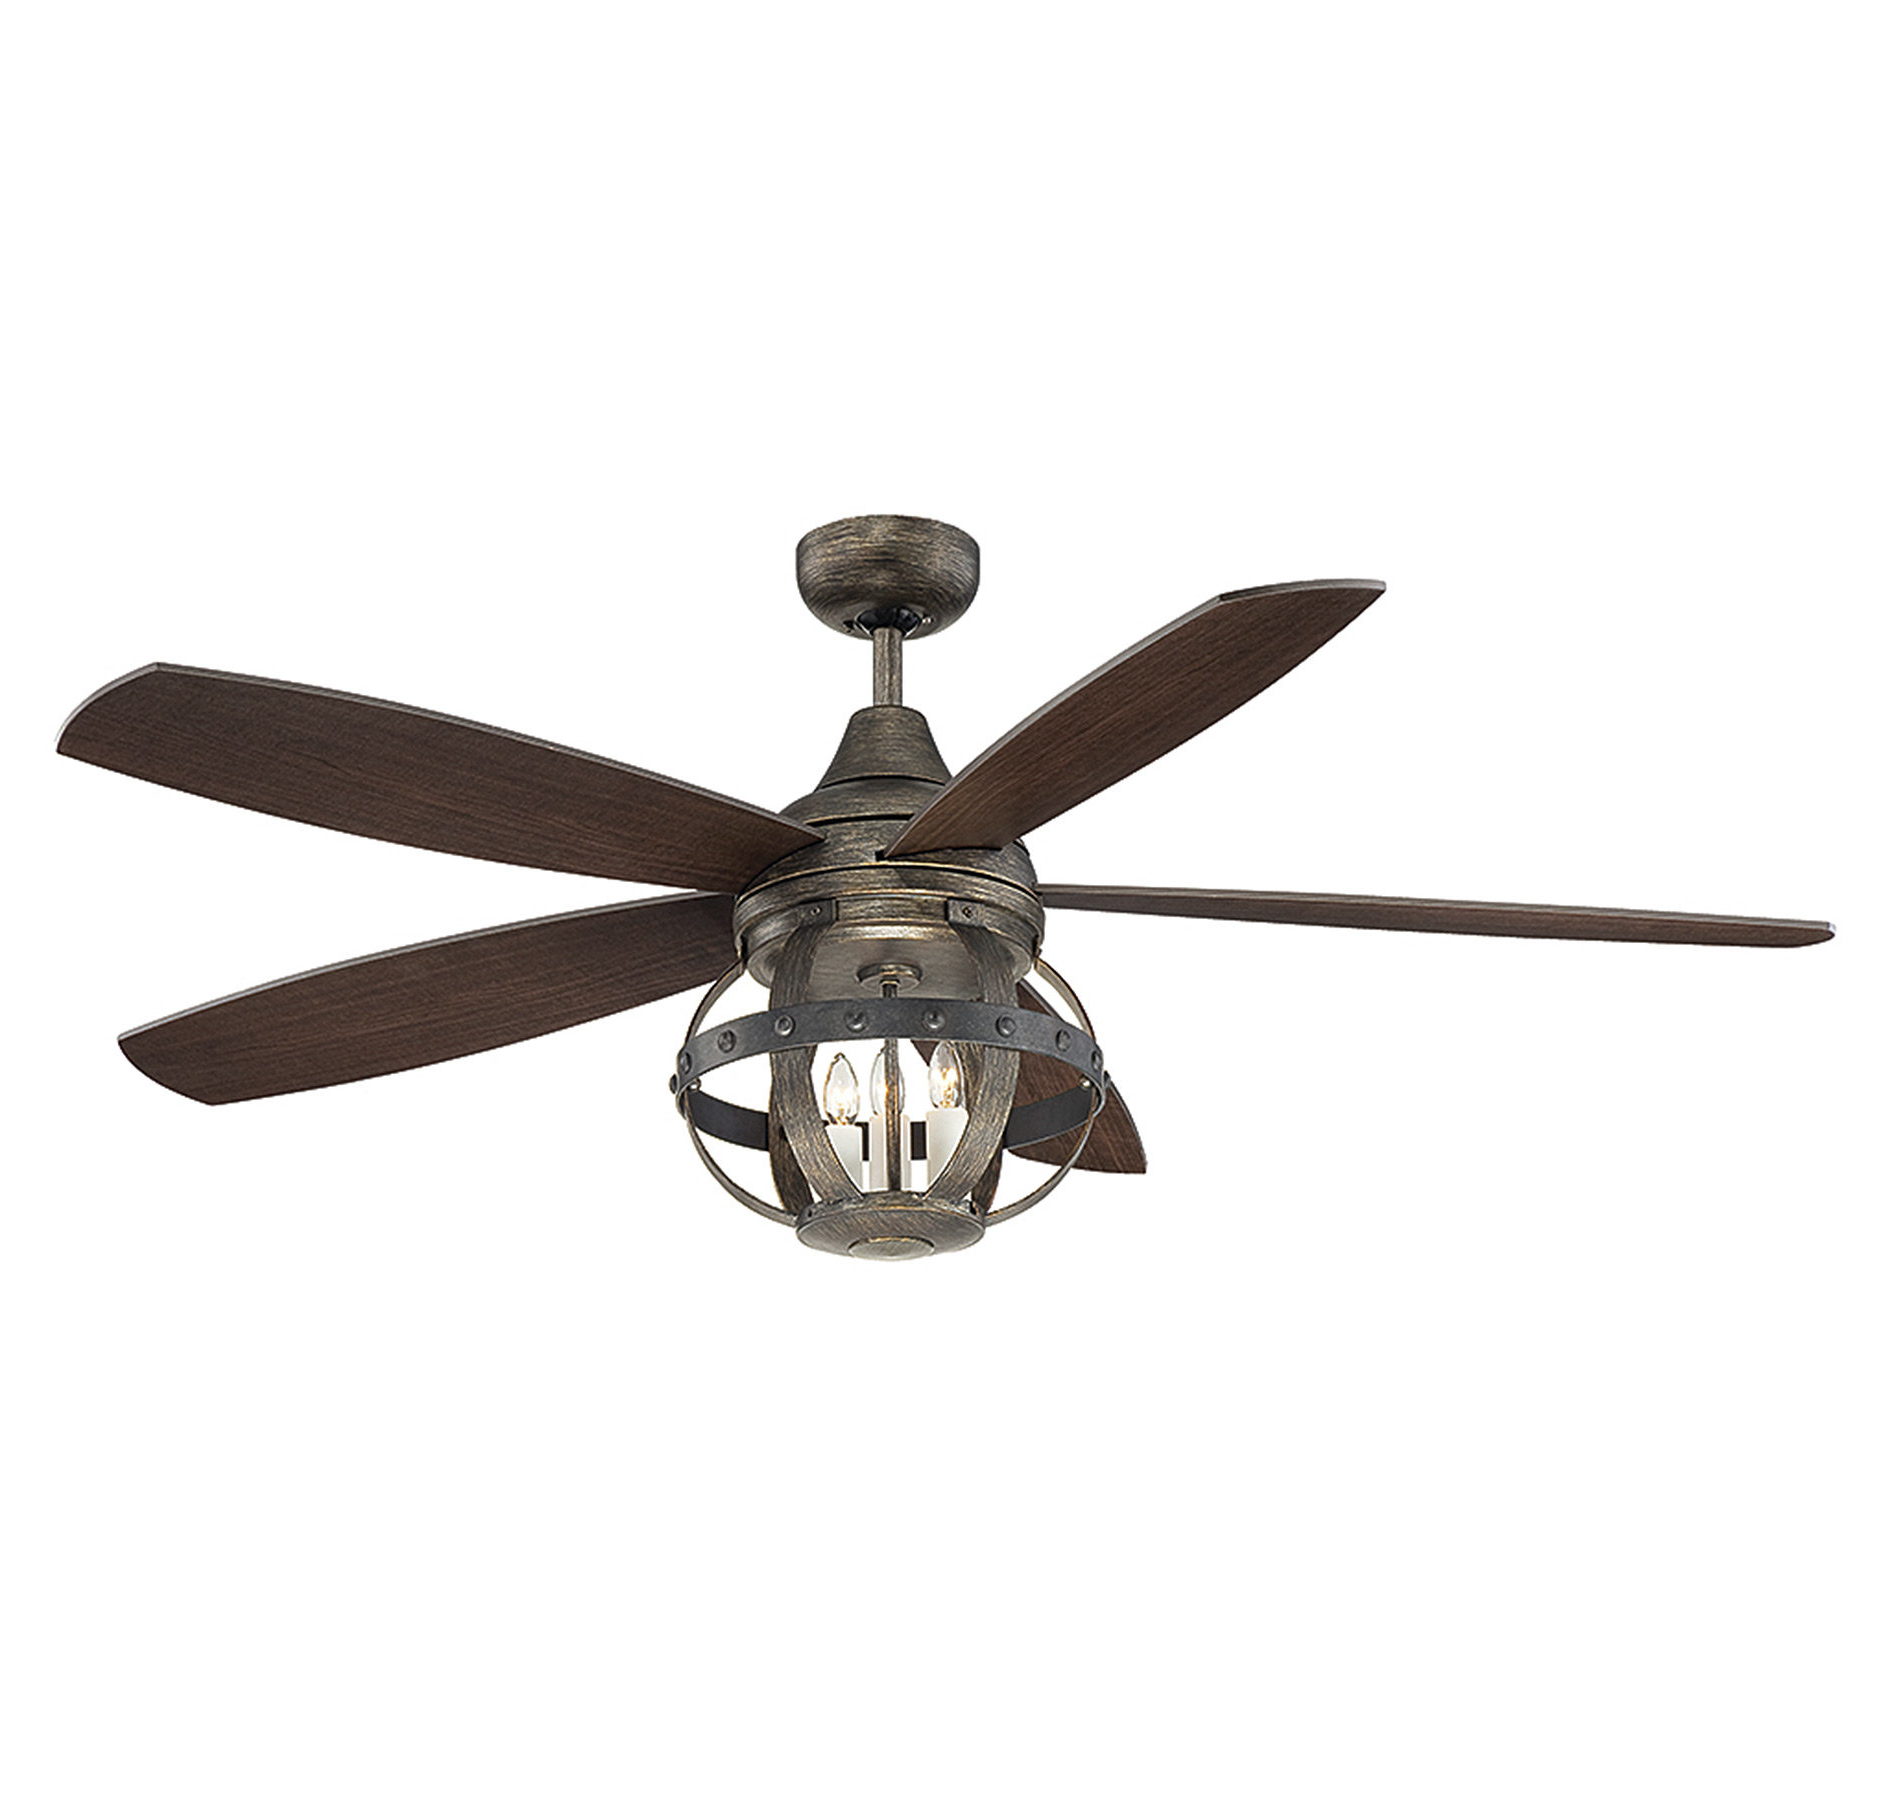 "52"" Wilburton 5 Blade Ceiling Fan With Remote, Light Kit Included For Fashionable Glenpool 5 Blade Ceiling Fans (Gallery 6 of 20)"